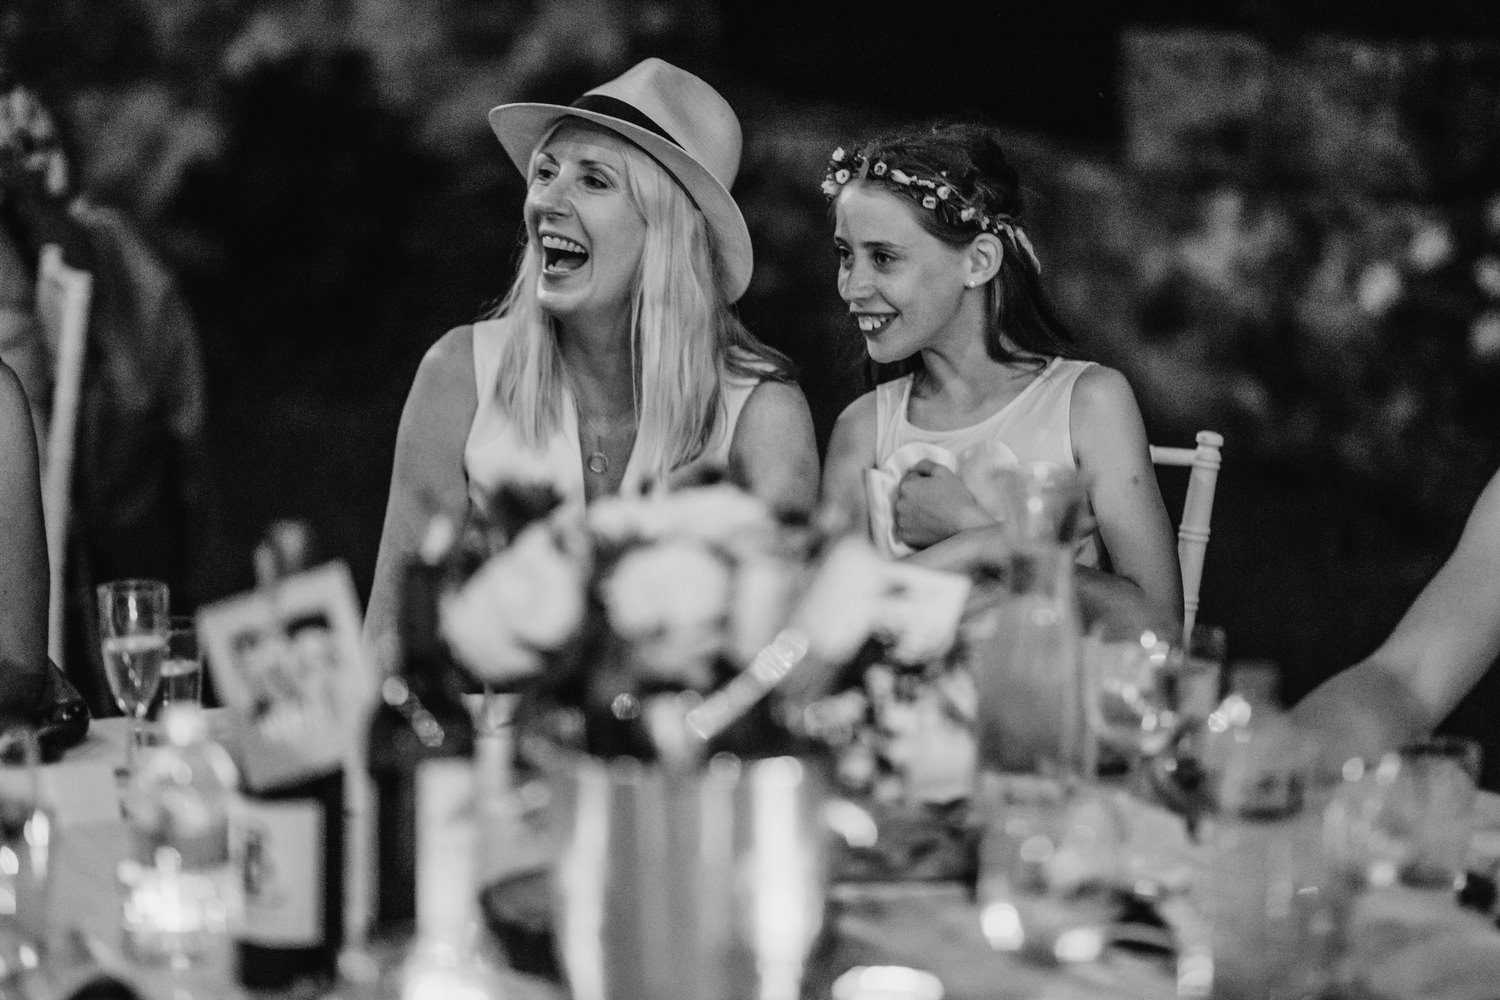 Mother and daughter laugh during speeches